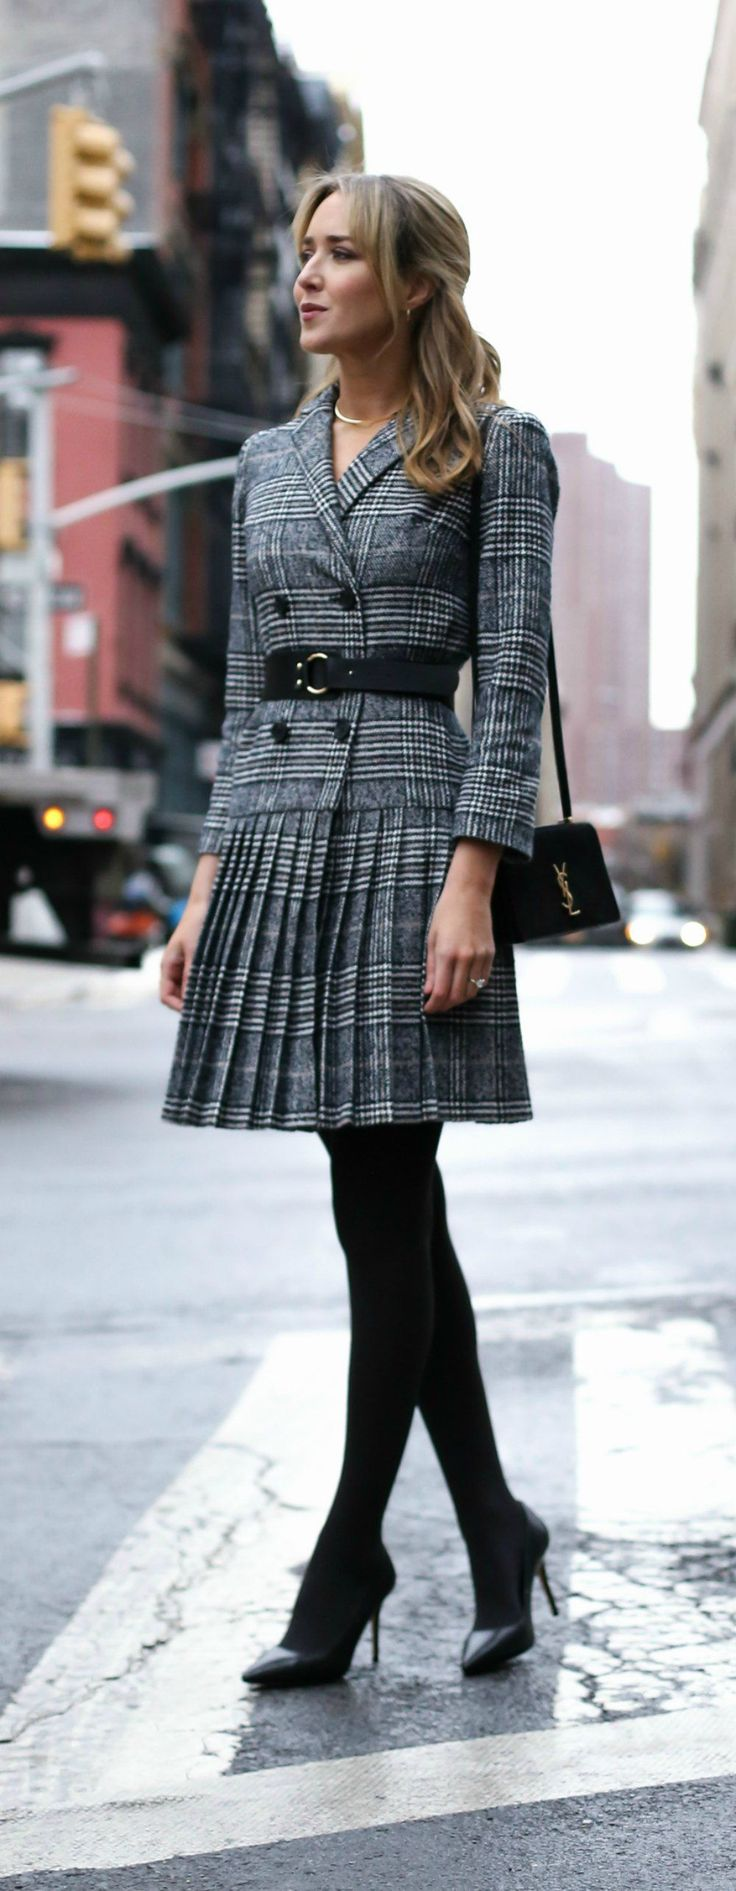 classic glen plaid pleated double-breasted suit dress, opaque black tights, classic pointed toe pumps, ysl suede dylan bag